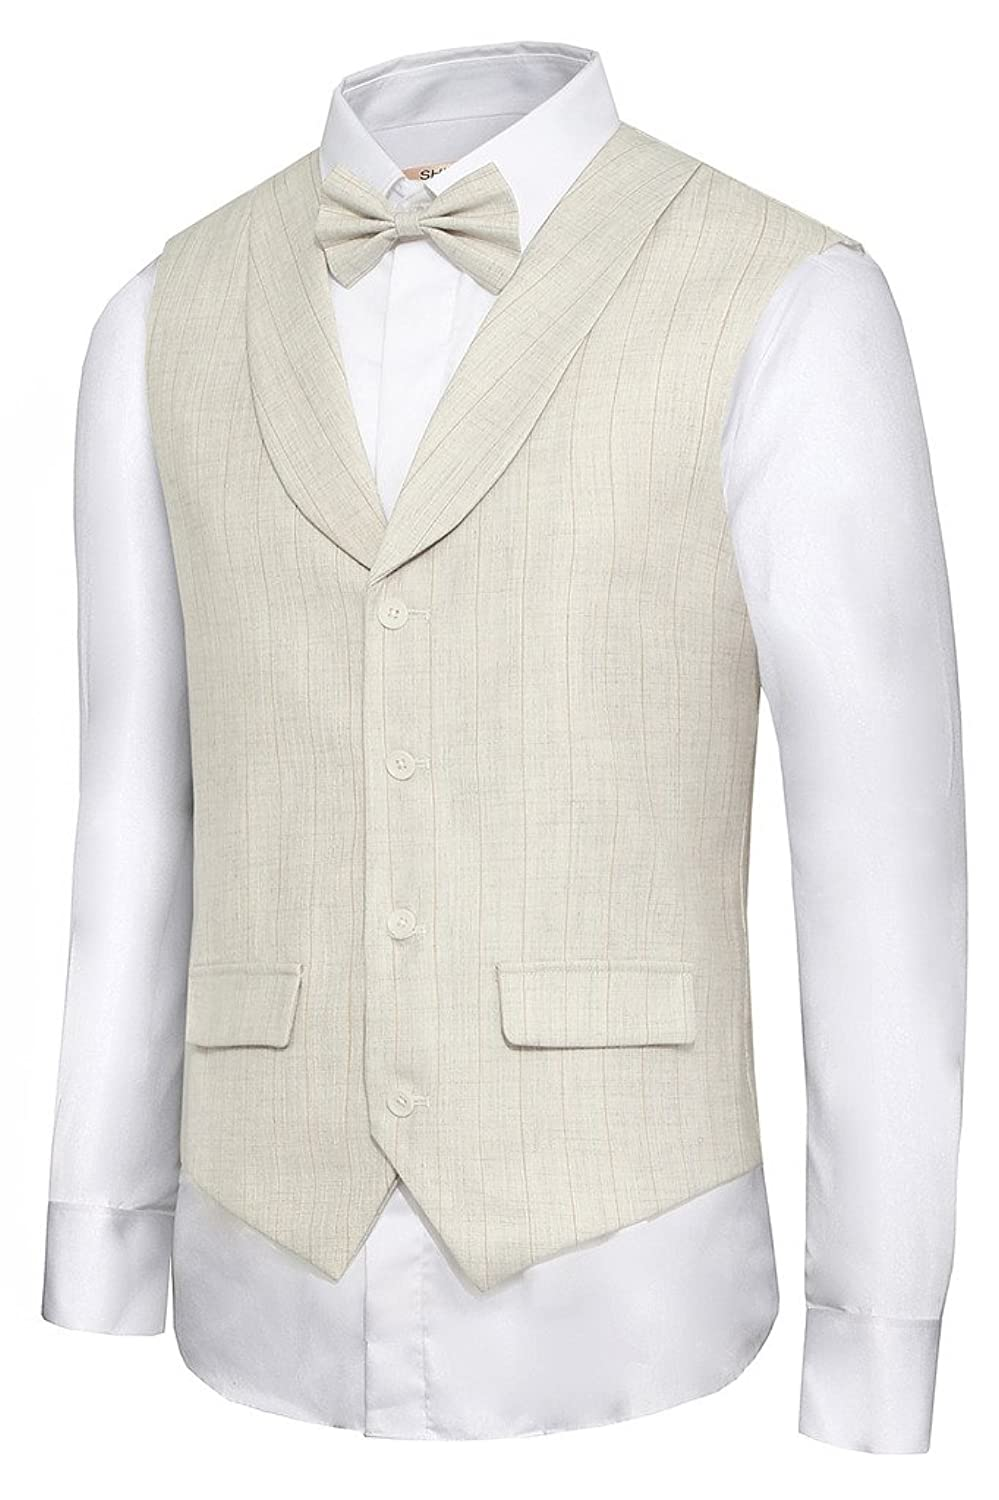 1920s Style Mens Vests Hanayome Mens British Style Slim Fit Chain Point 4 Button Patry Dress vest VS09£¨BeigeM) $28.50 AT vintagedancer.com